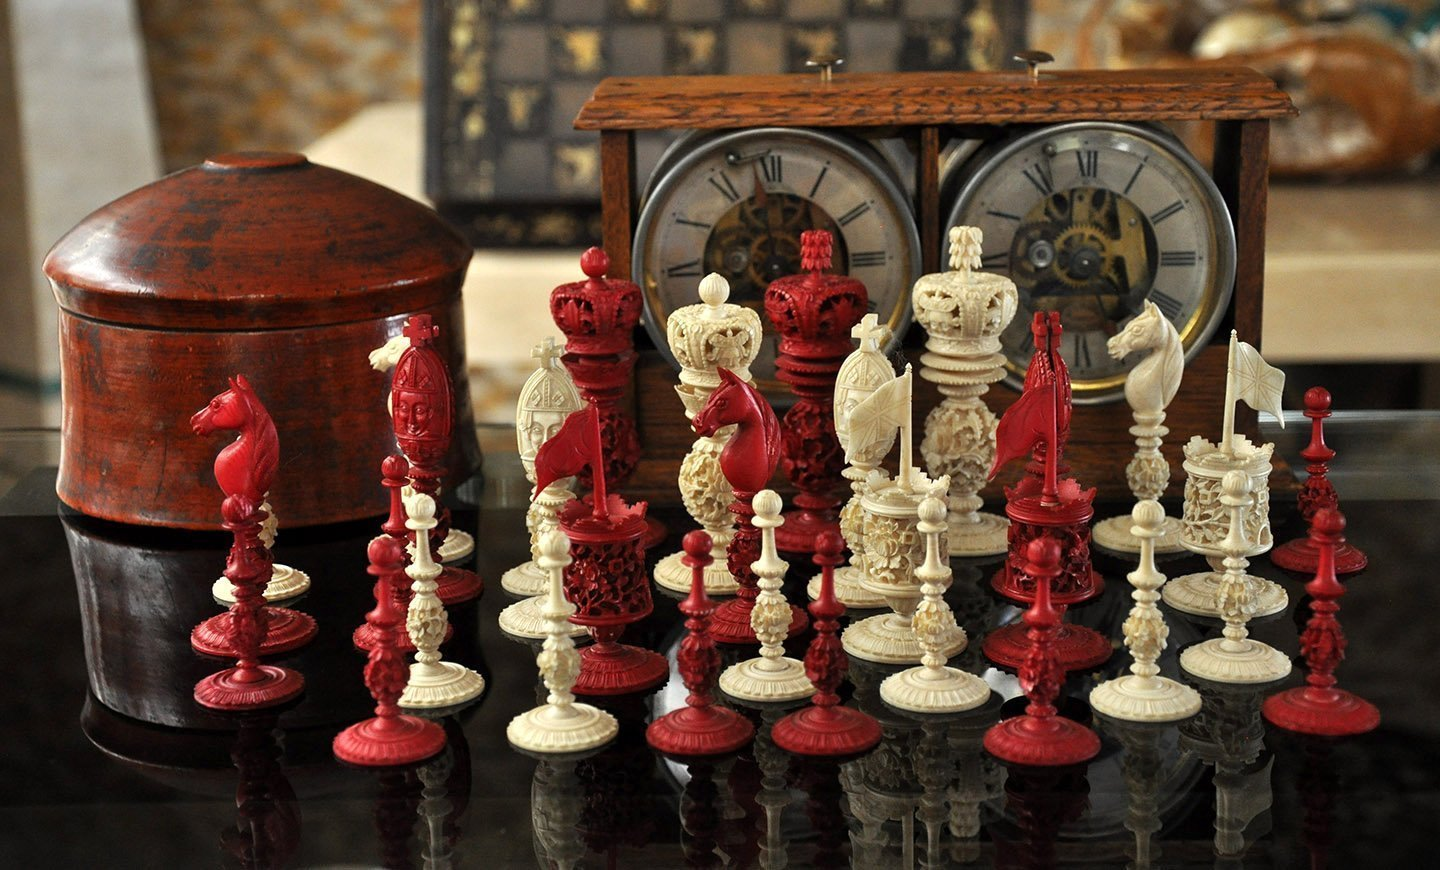 Large Antique Burmese Chessmen, Type III